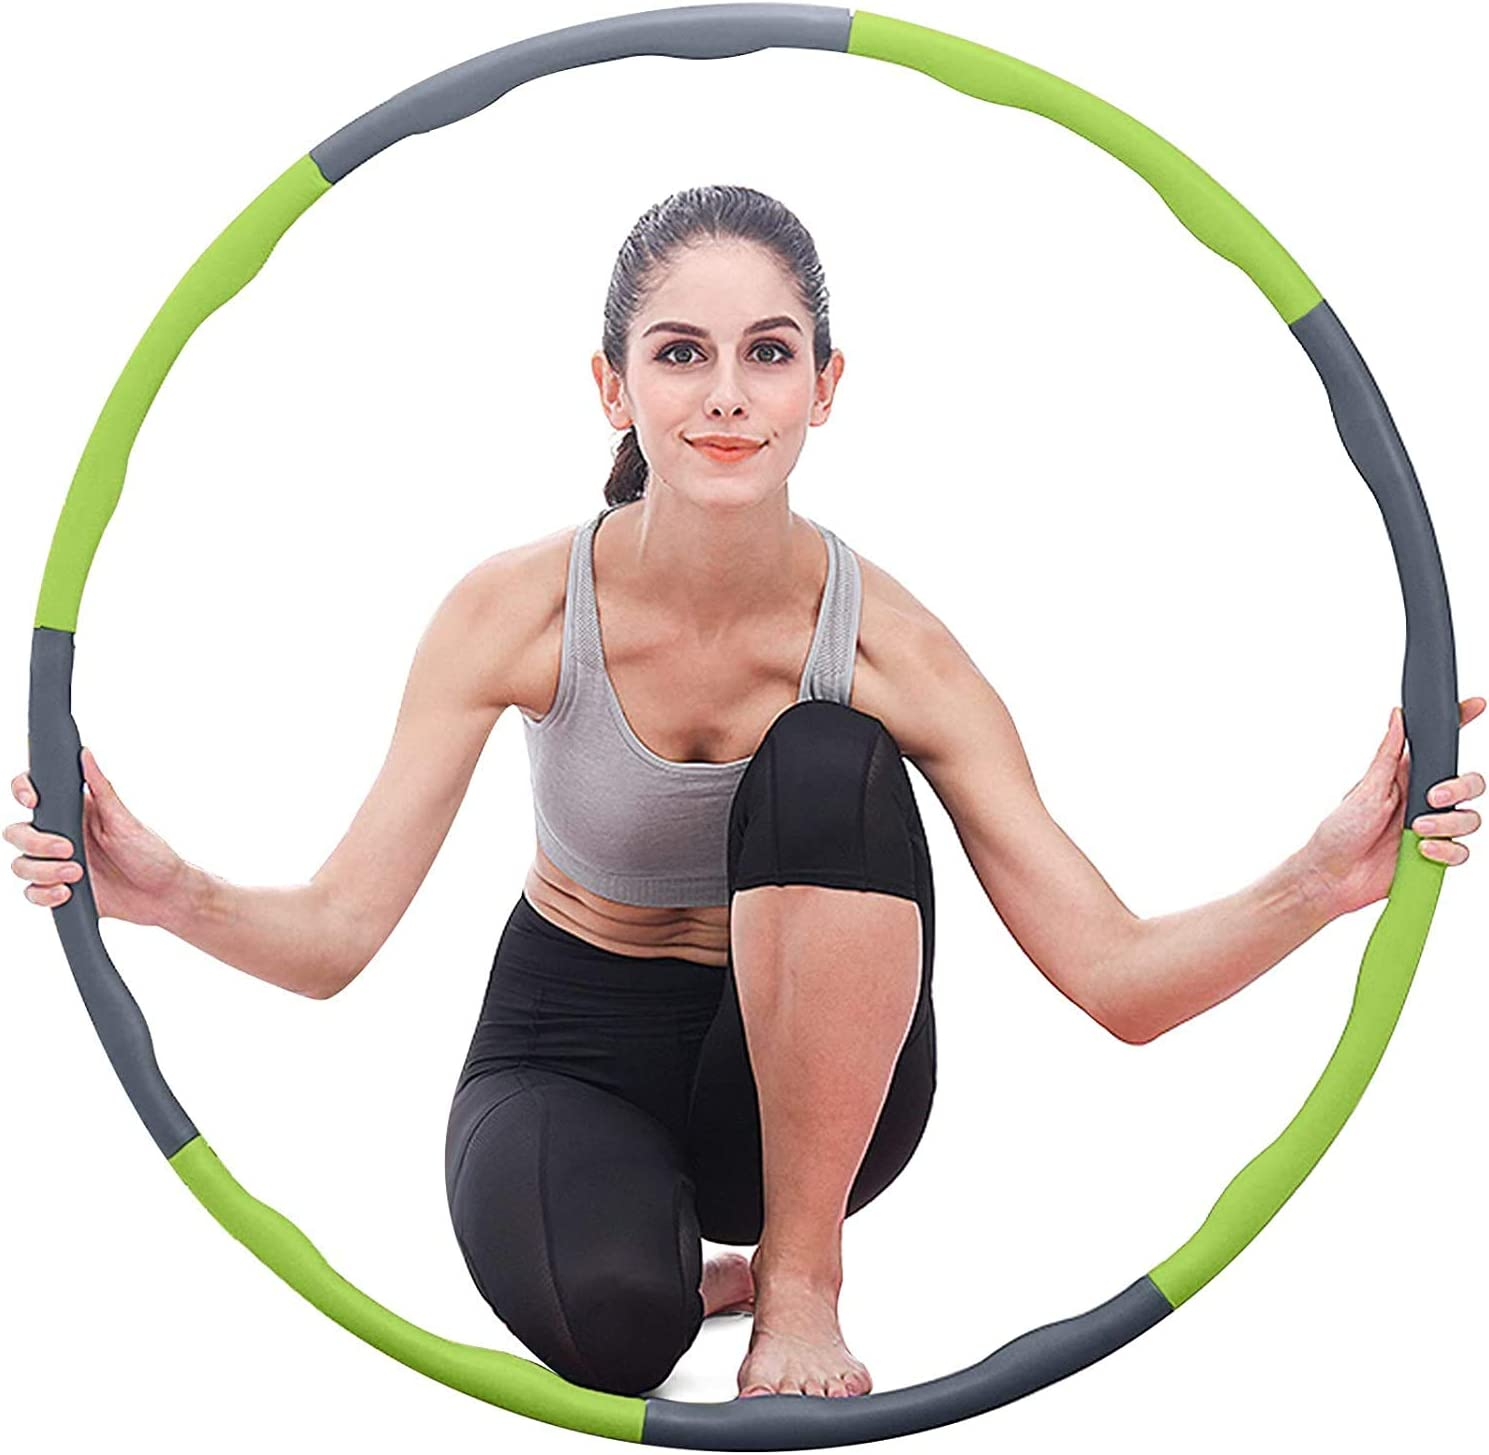 ablever Hula Hoop, Hula Hoop Can Be Used For Weight Loss And Massage